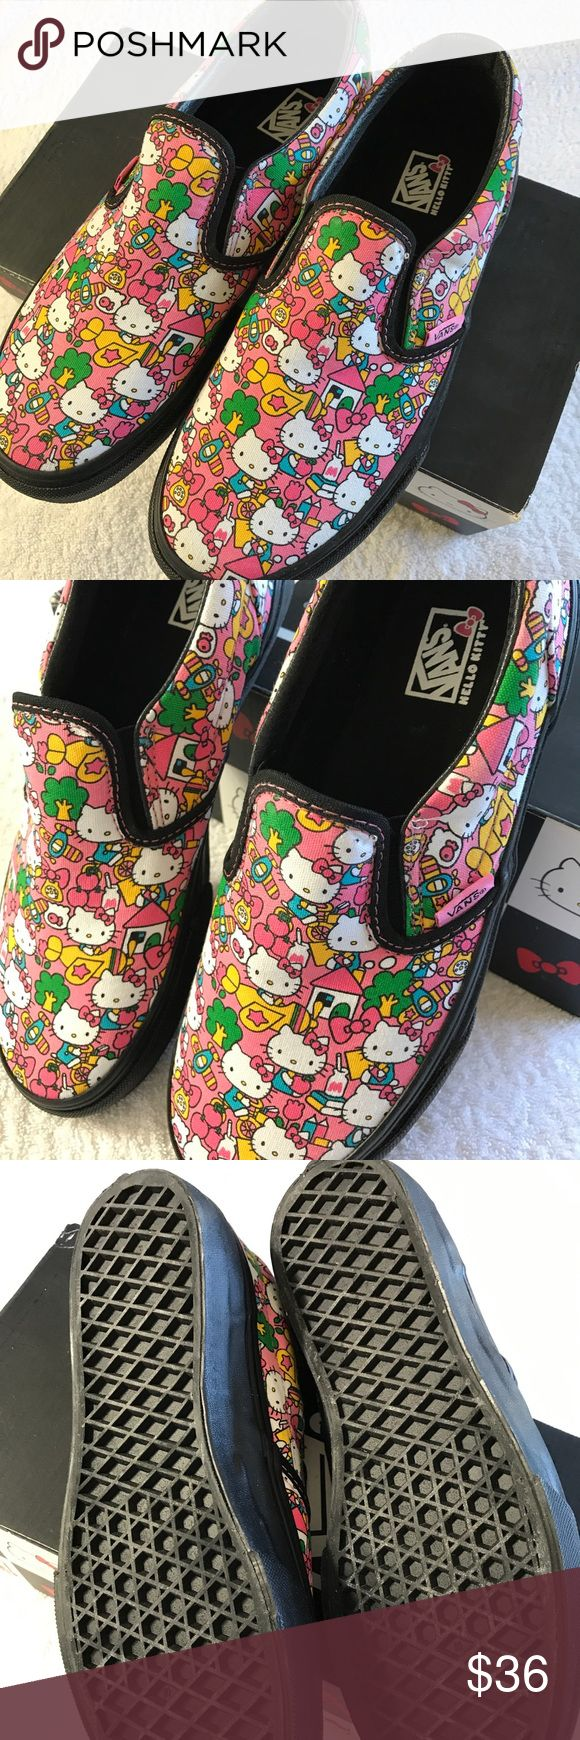 Hello Kitty Vans New condition. Authentic Hello Kitty Vans. Youth size 4;  possibly